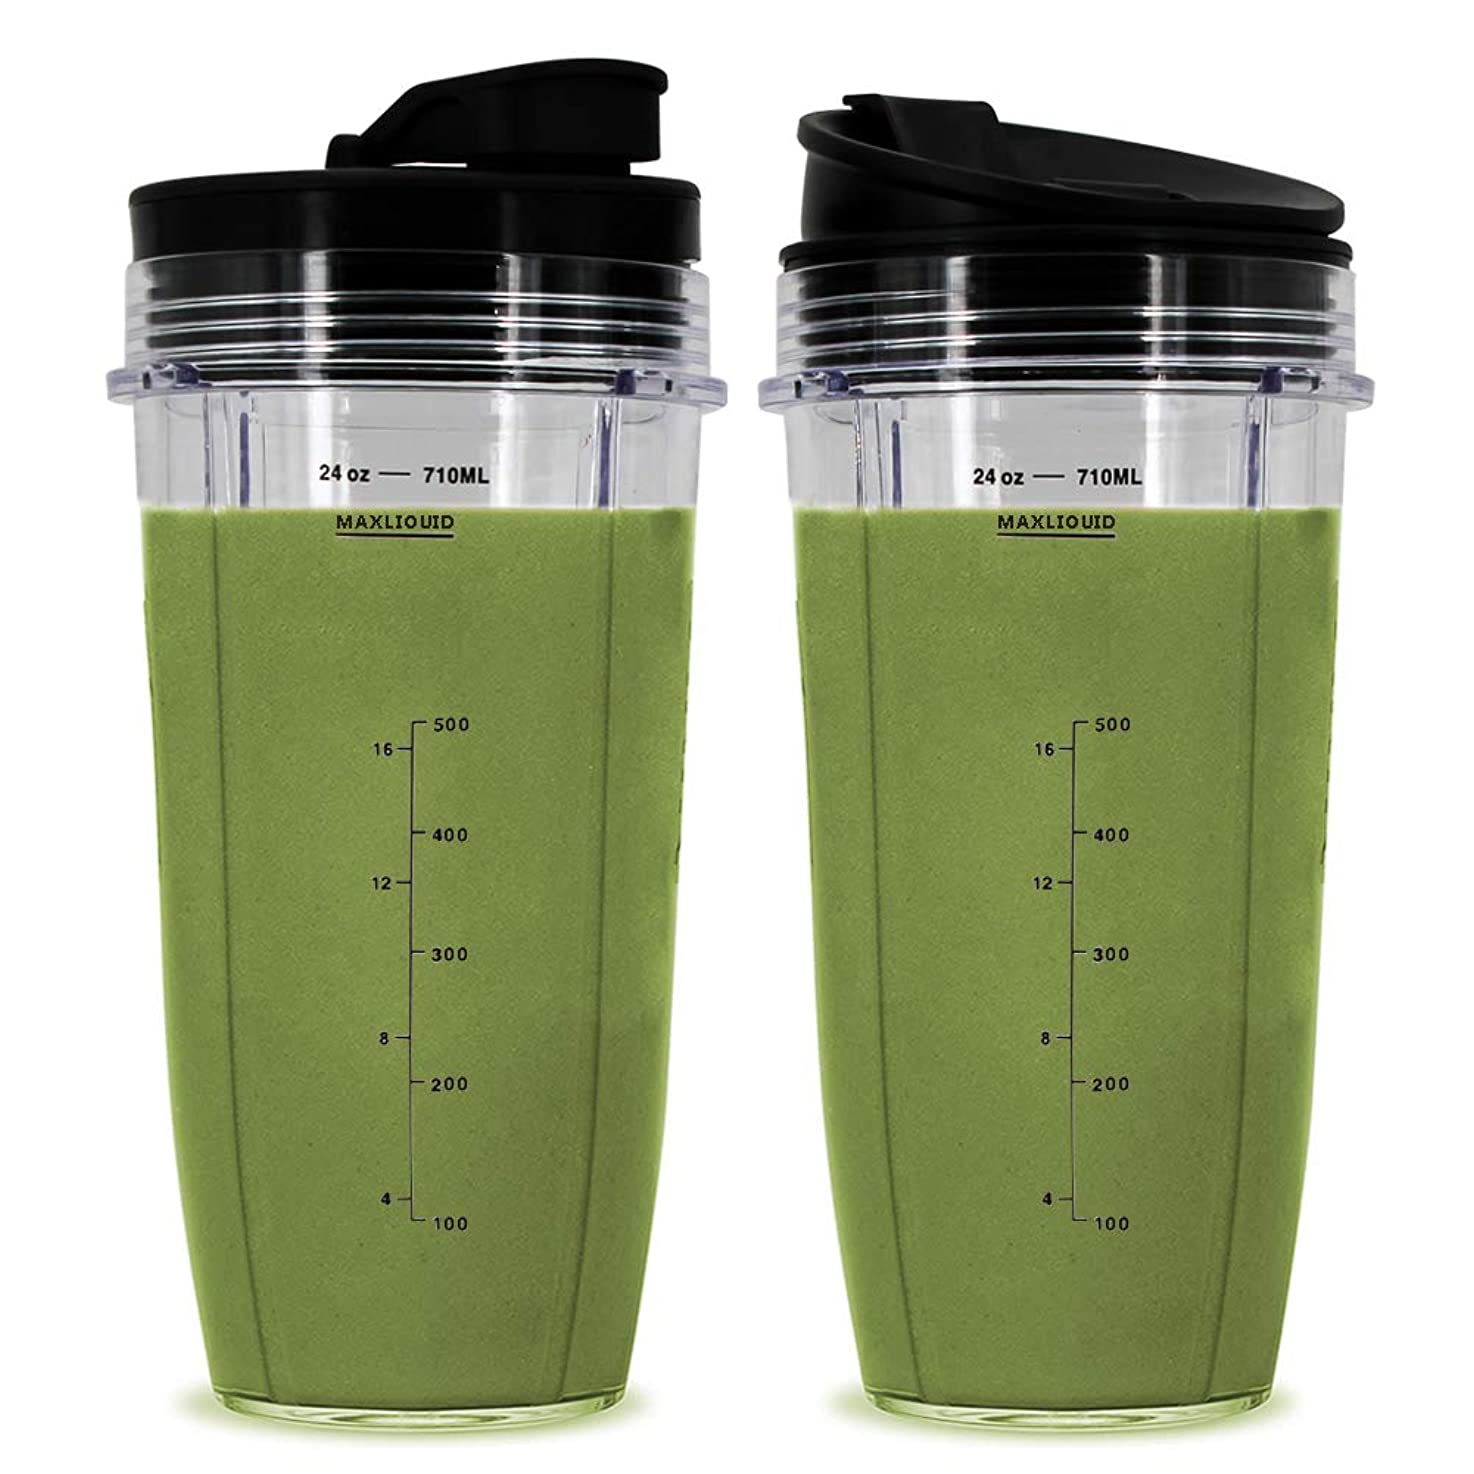 24 oz Cups, Compatible with BL480, BL490, BL640, BL680 for Nutri Ninja Auto IQ Series Blenders (Pack of 2) vdgobgifhvndb0